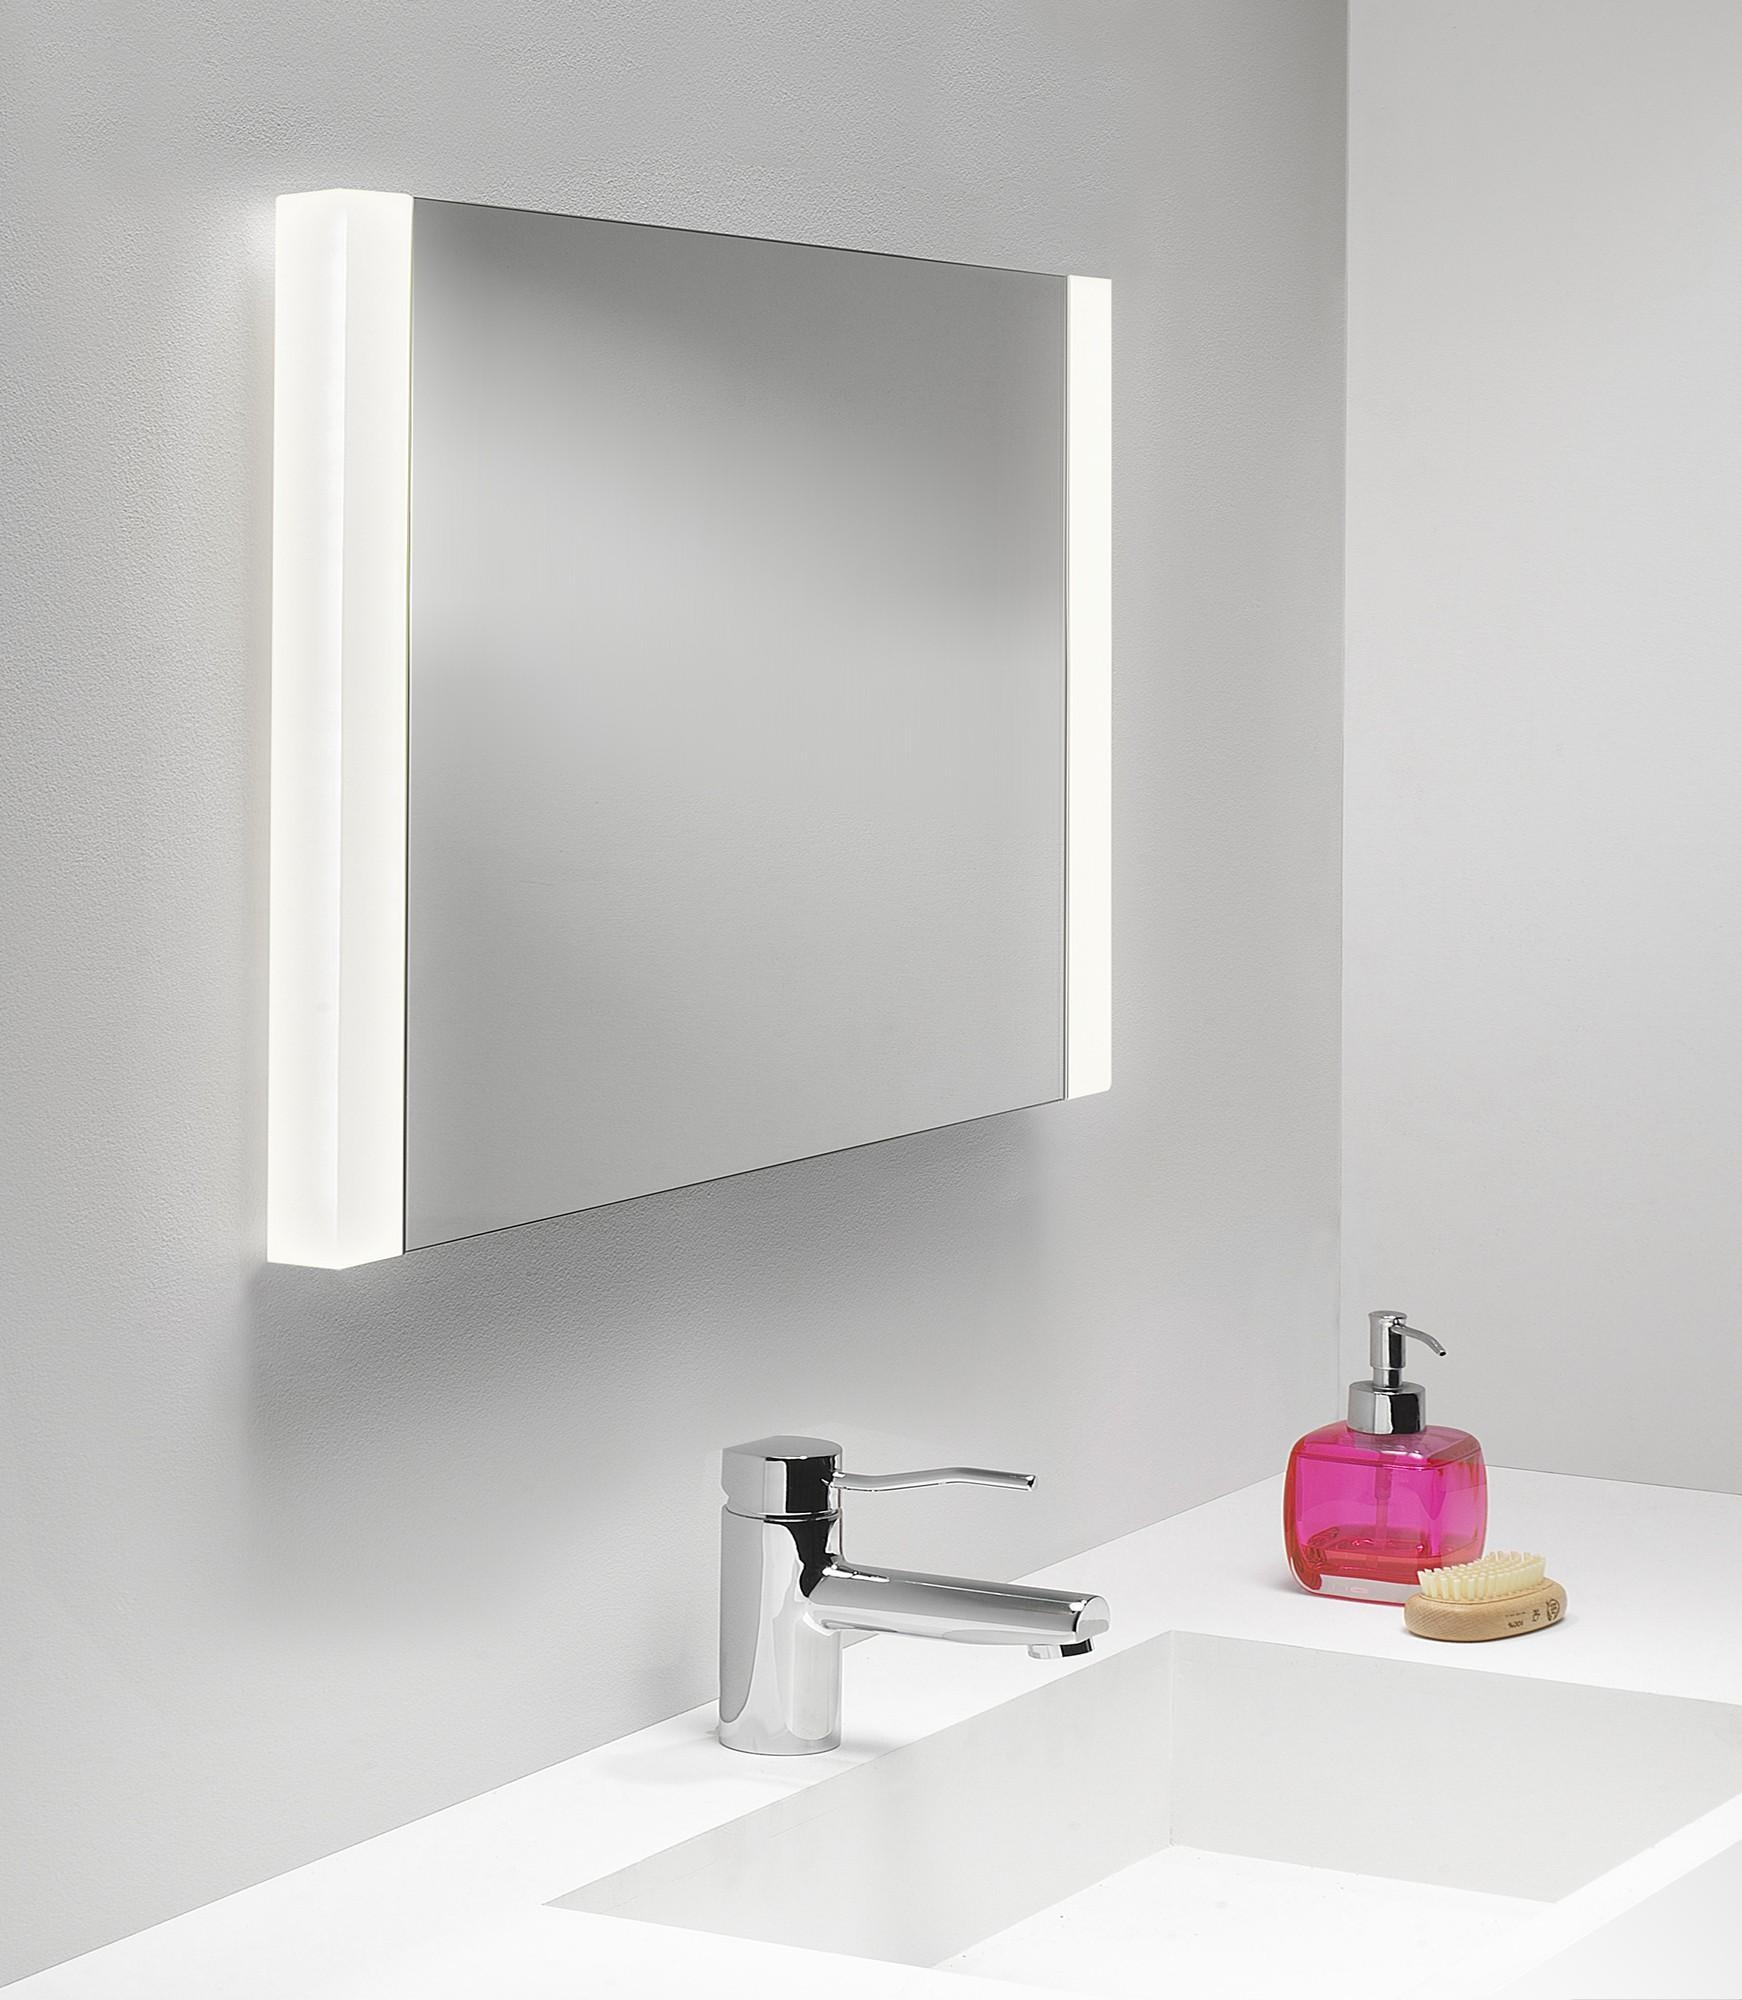 Bathroom Amusing White Mirror Design Framed Vanity With Cabinets With Regard To Bathroom Mirrors Lights (View 8 of 20)